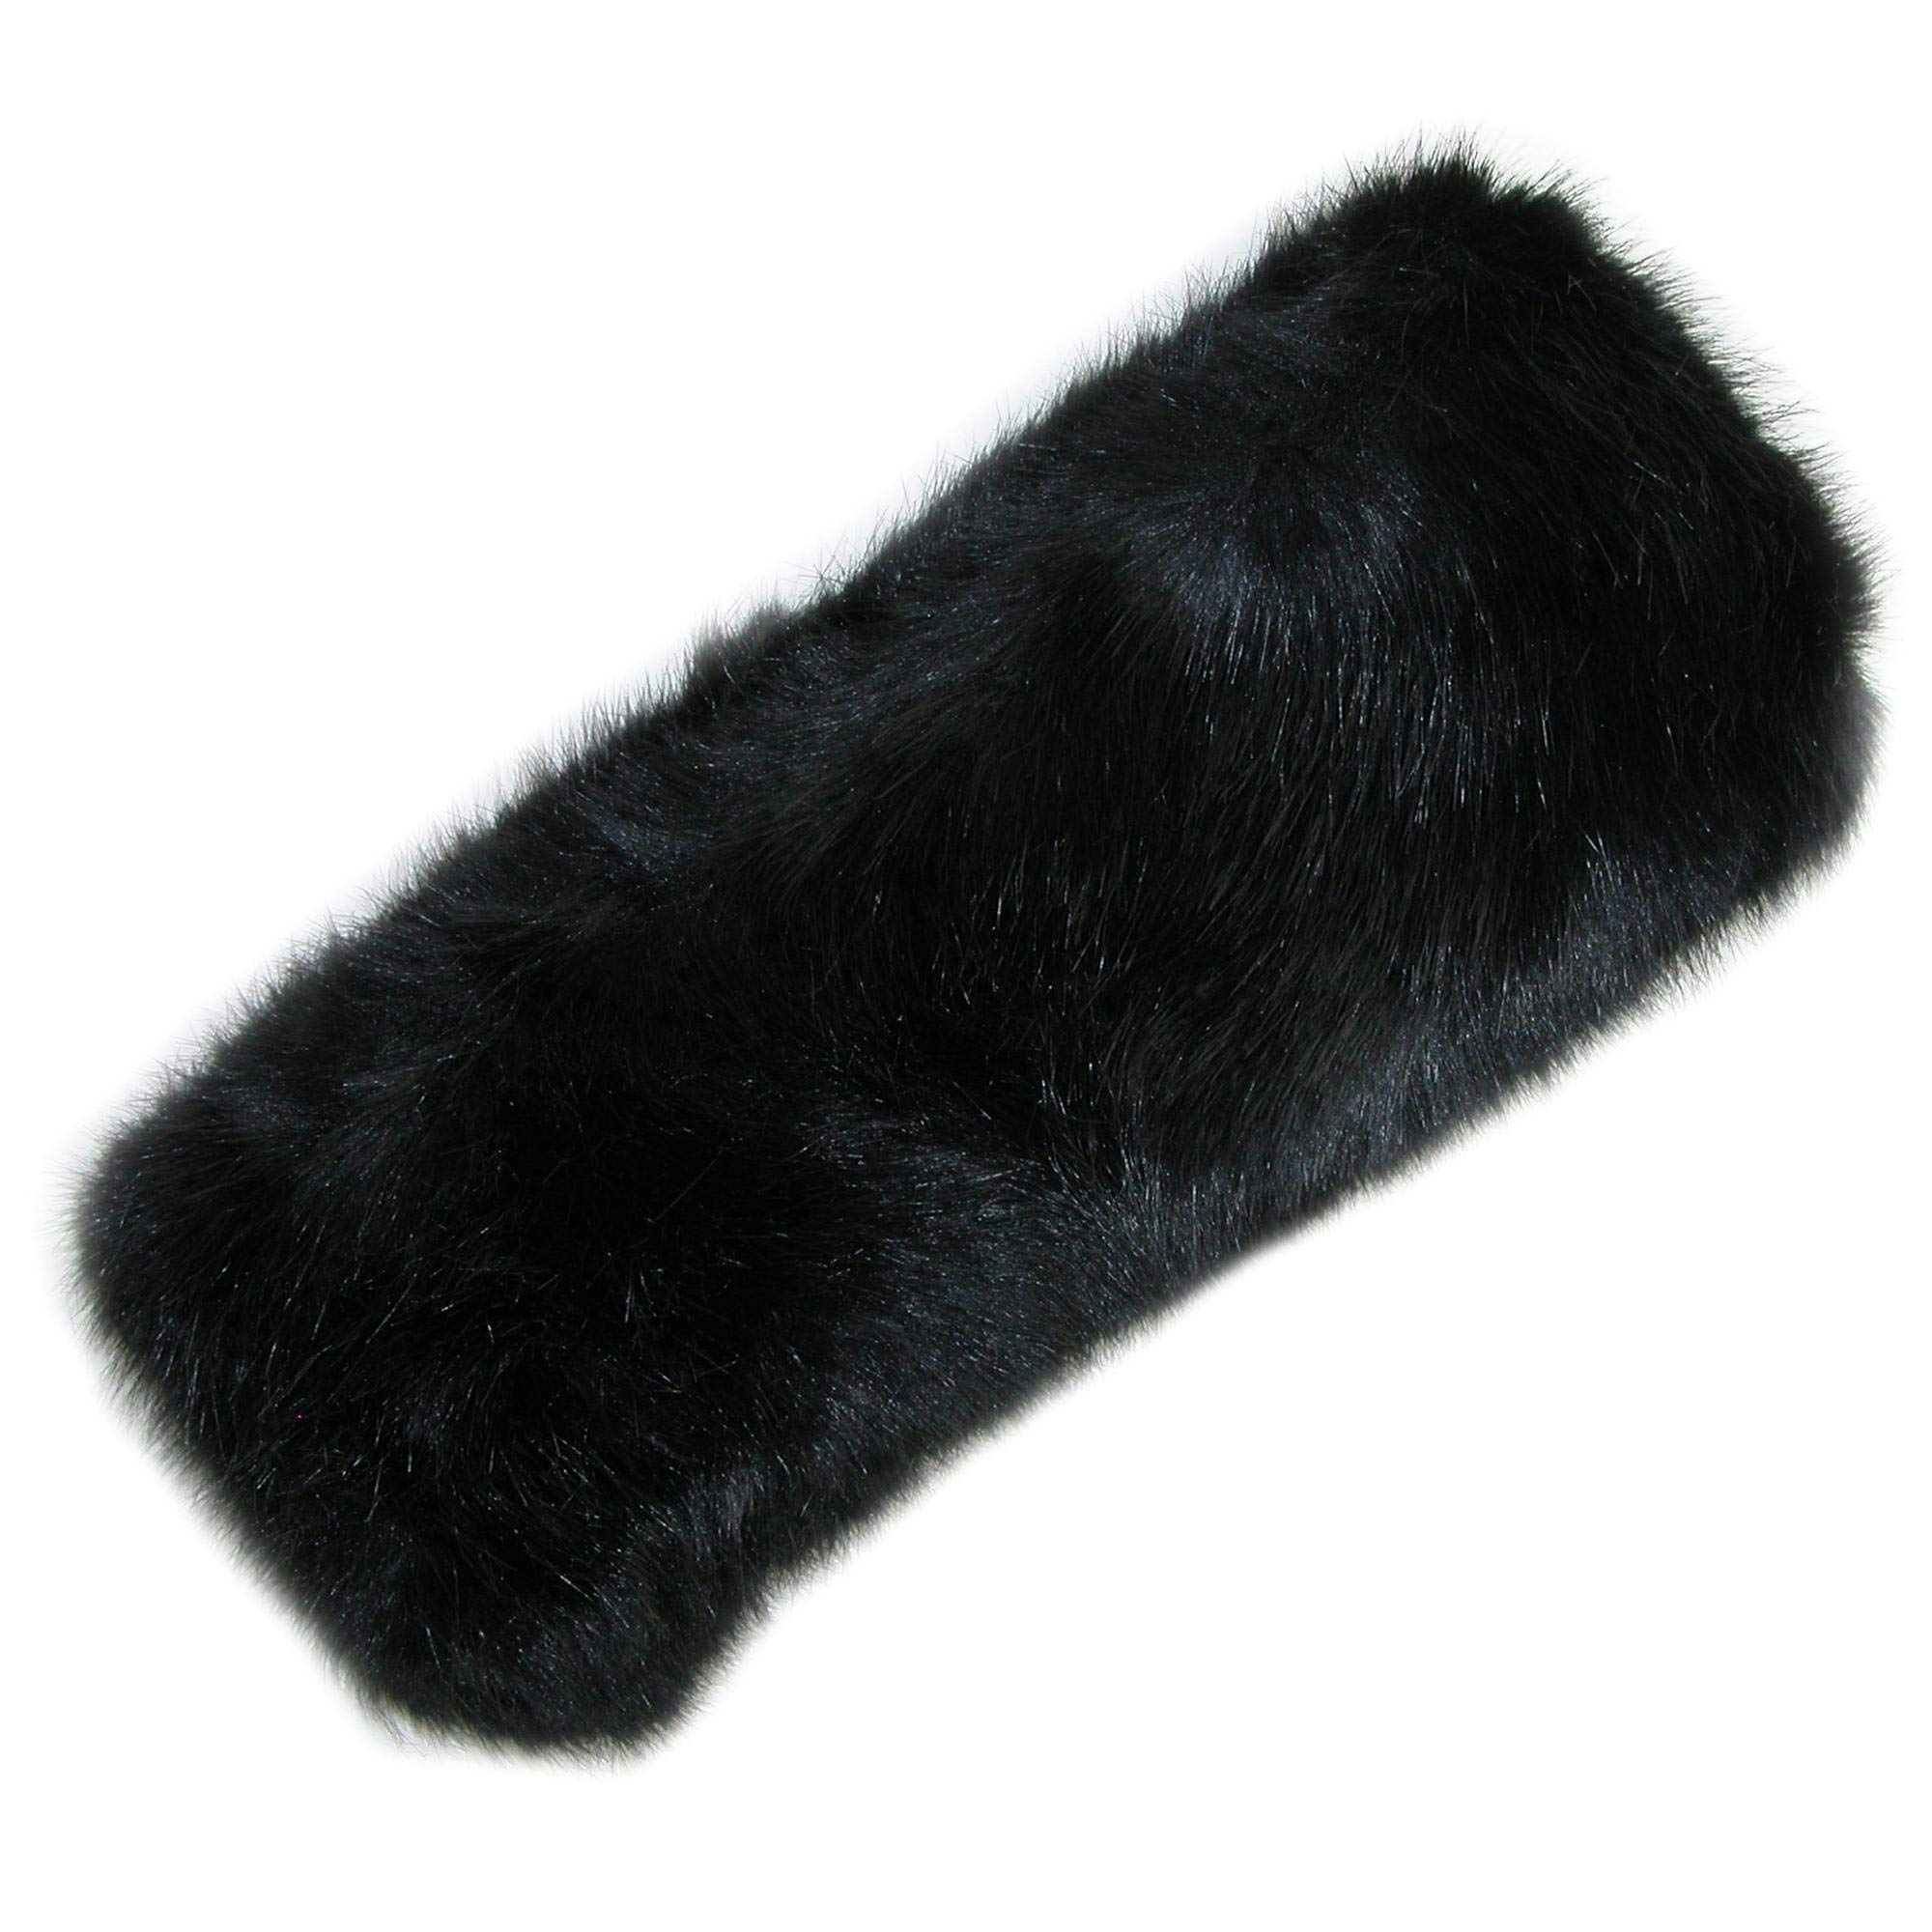 Pia Rossini Women's Faux Fur Headband with Fleece Lining, Black